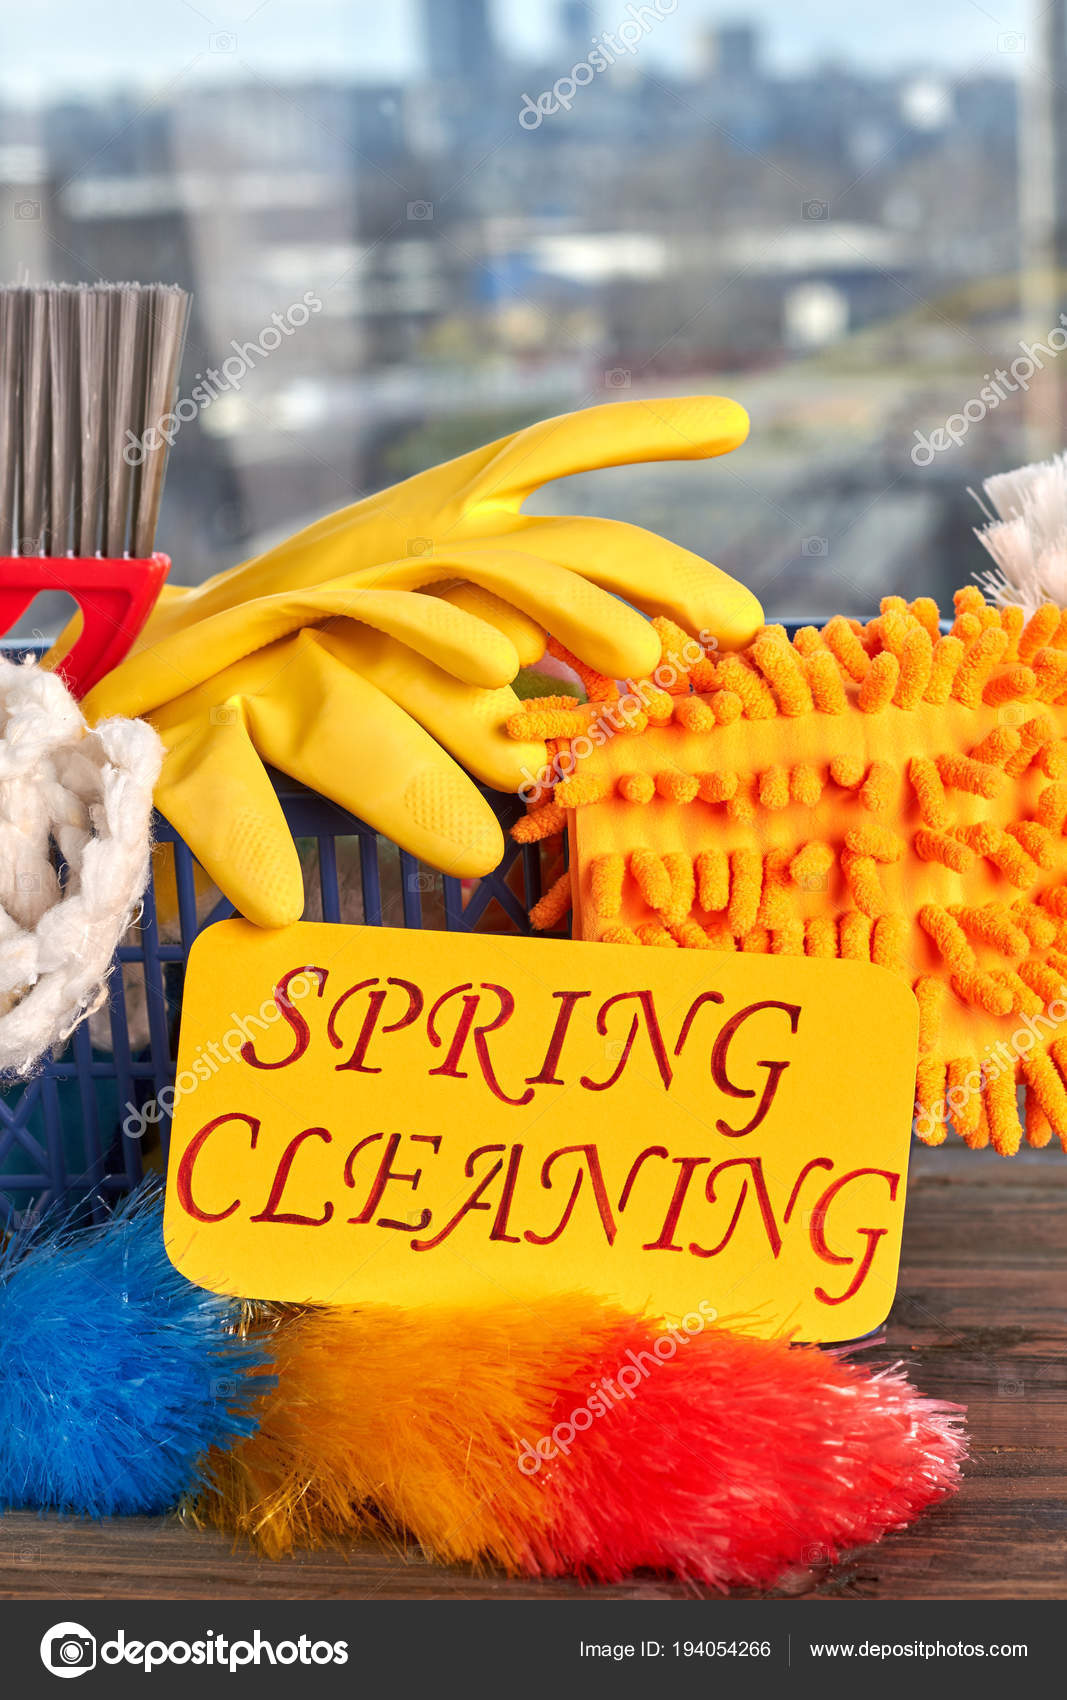 Equipment for house cleaning close up stock photo for House cleaning stock photos